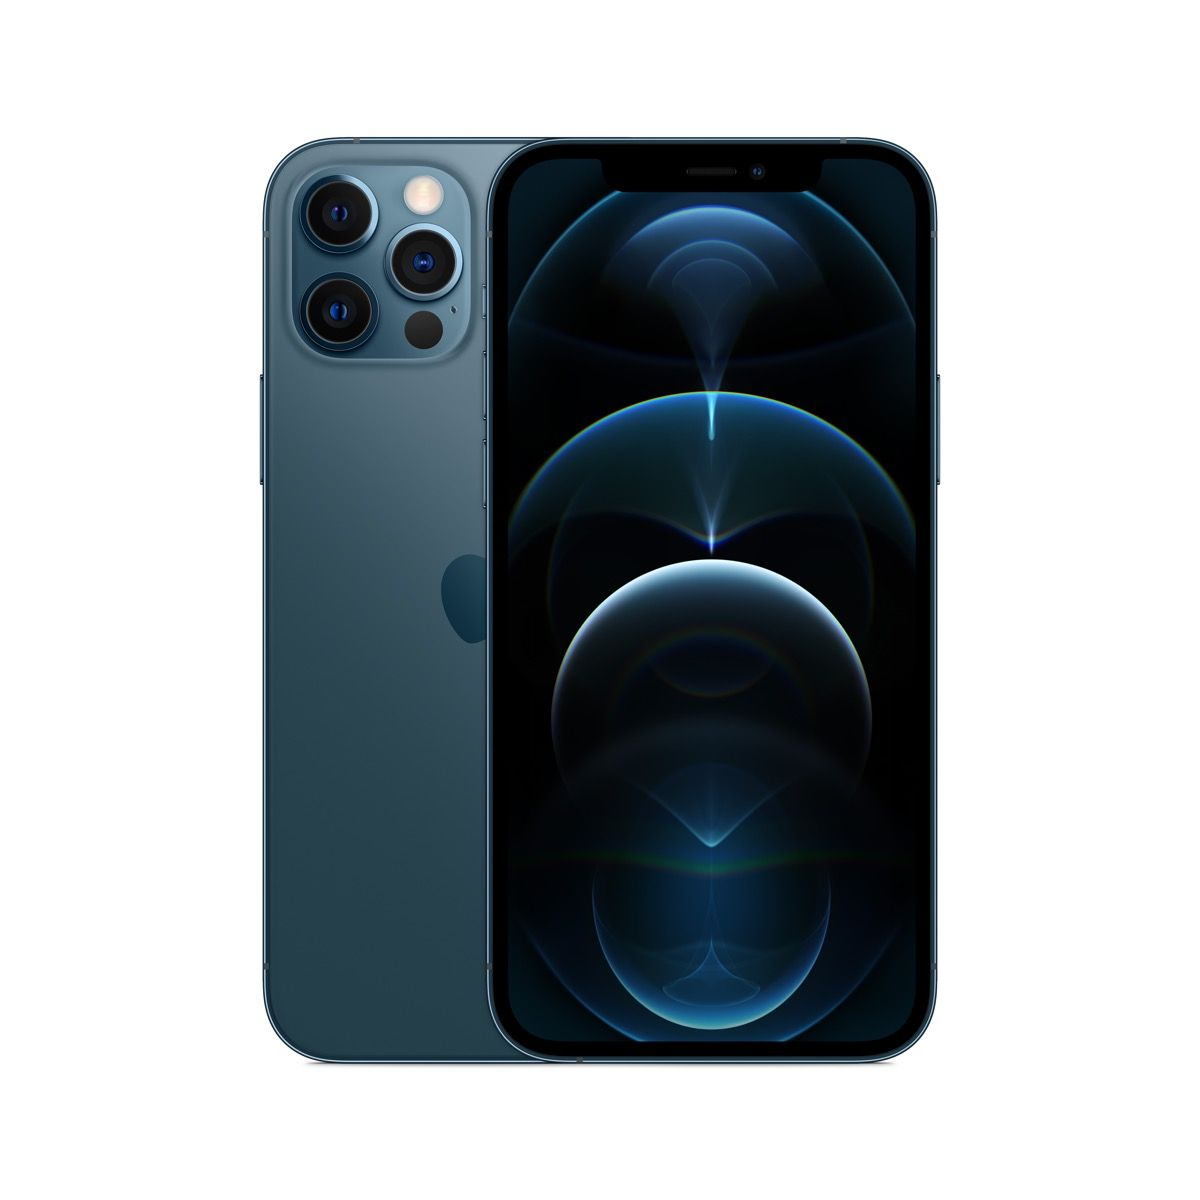 Apple iPhone 12 Pro Max 256GB Pacific Blue / SK